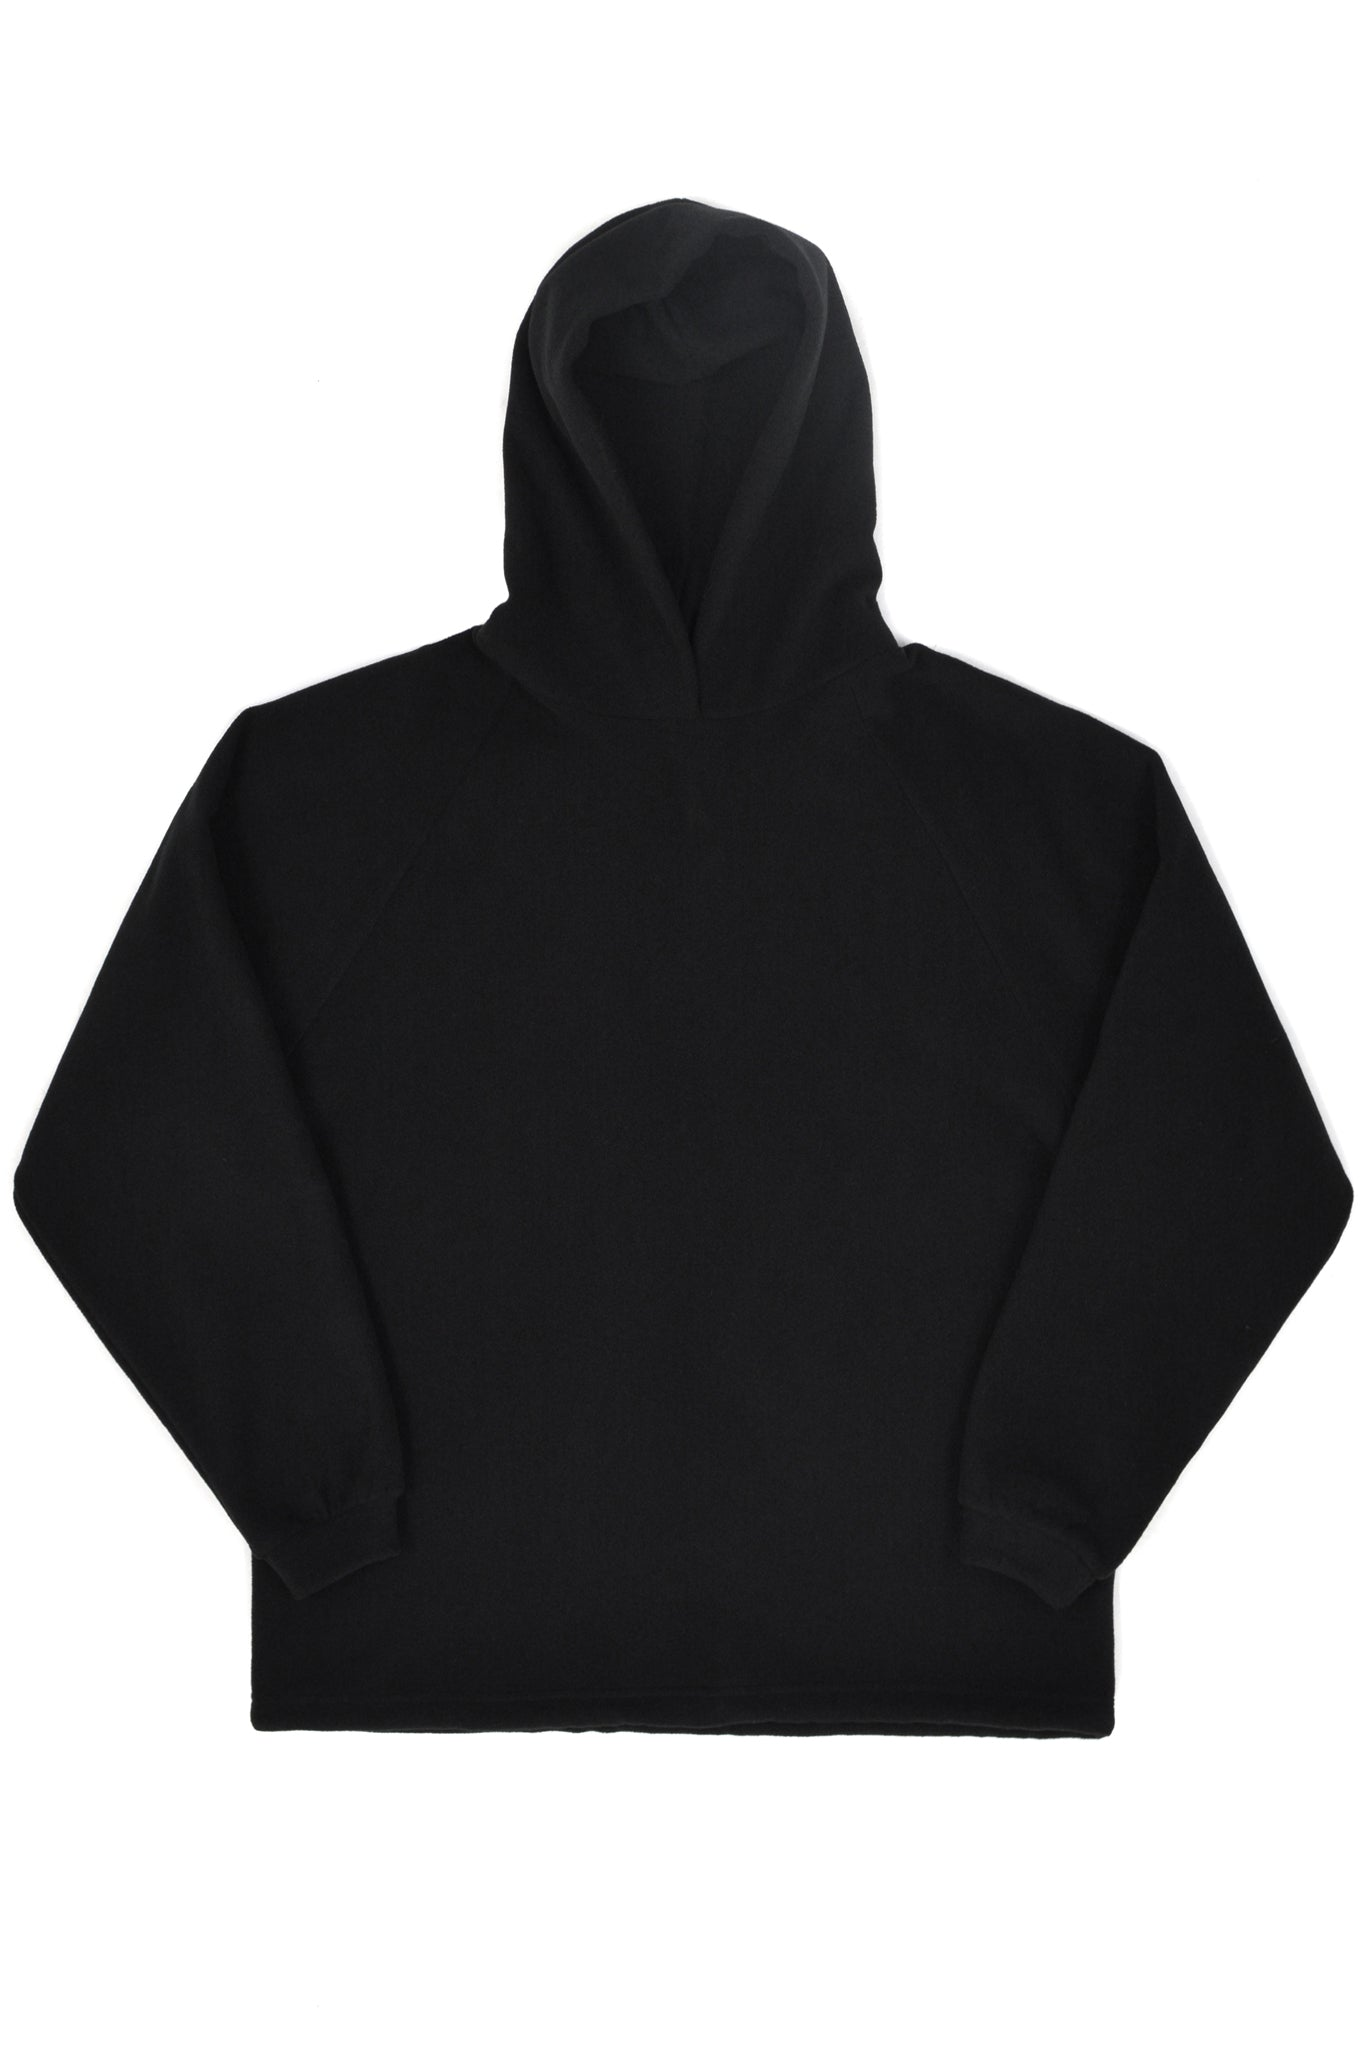 SOOP SOOP Polar Fleece Hoodie, Black